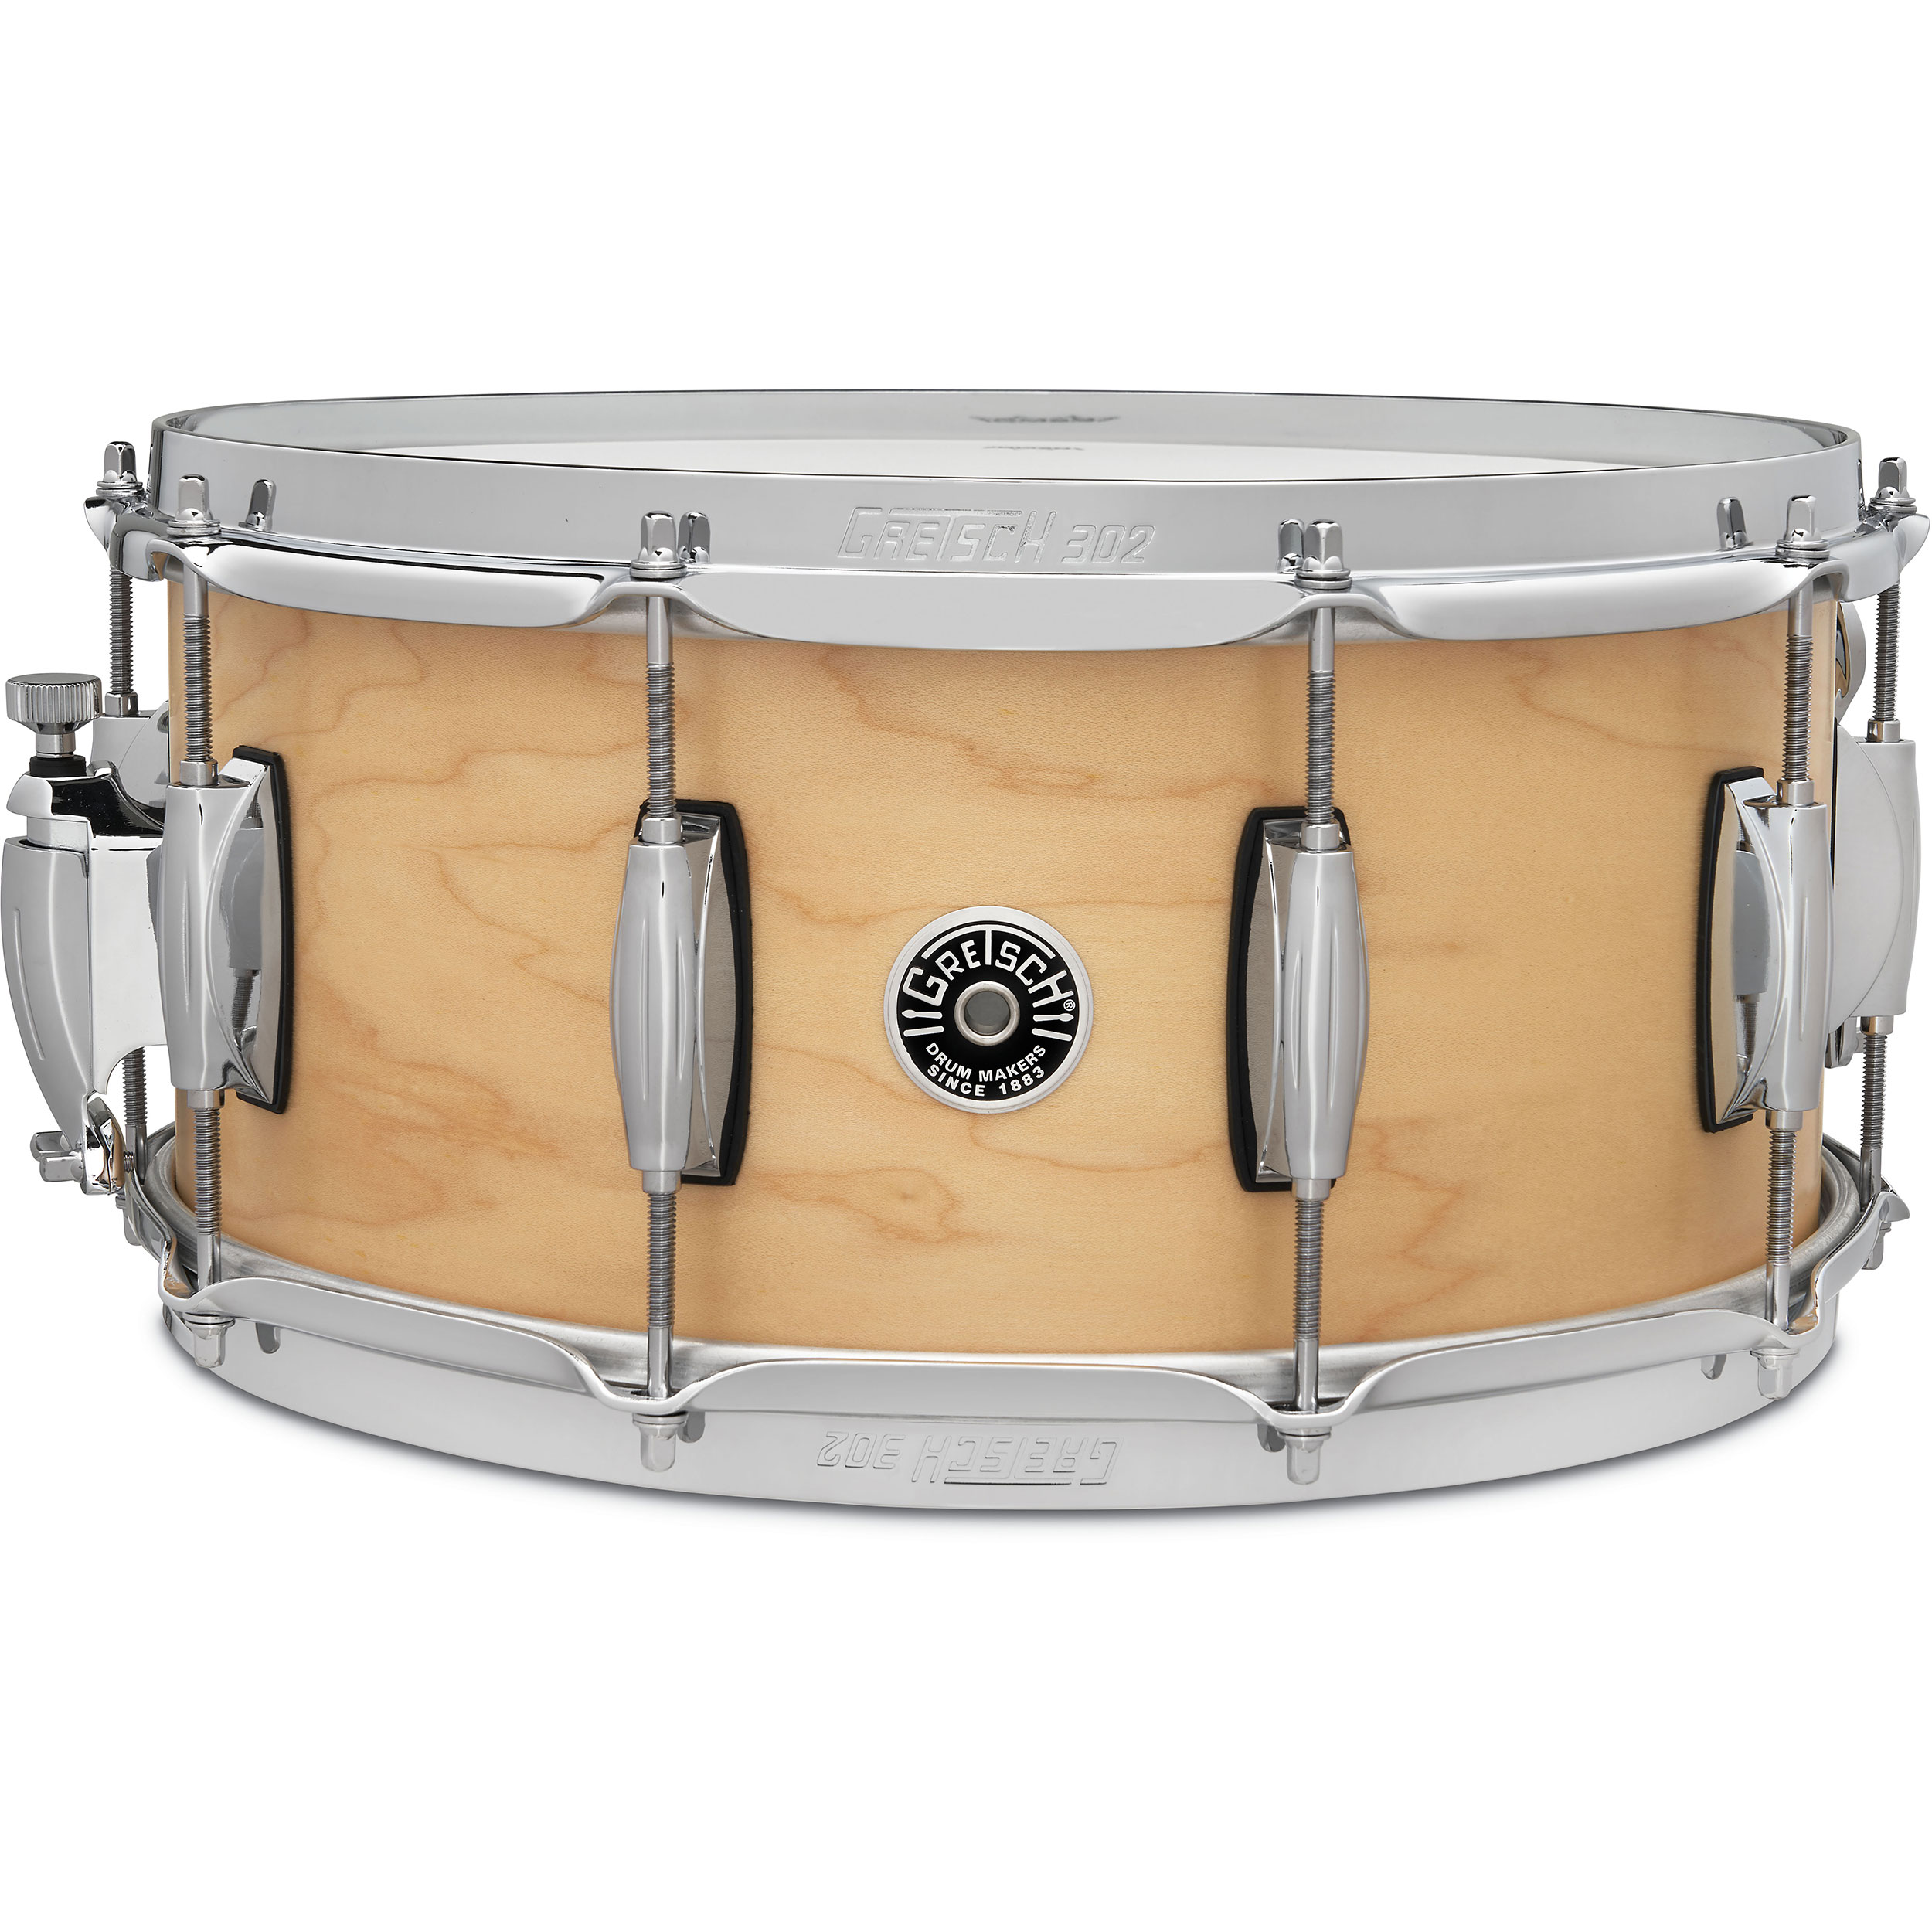 "Gretsch 6.5"" x 14"" Brooklyn Straight Satin Snare Drum"